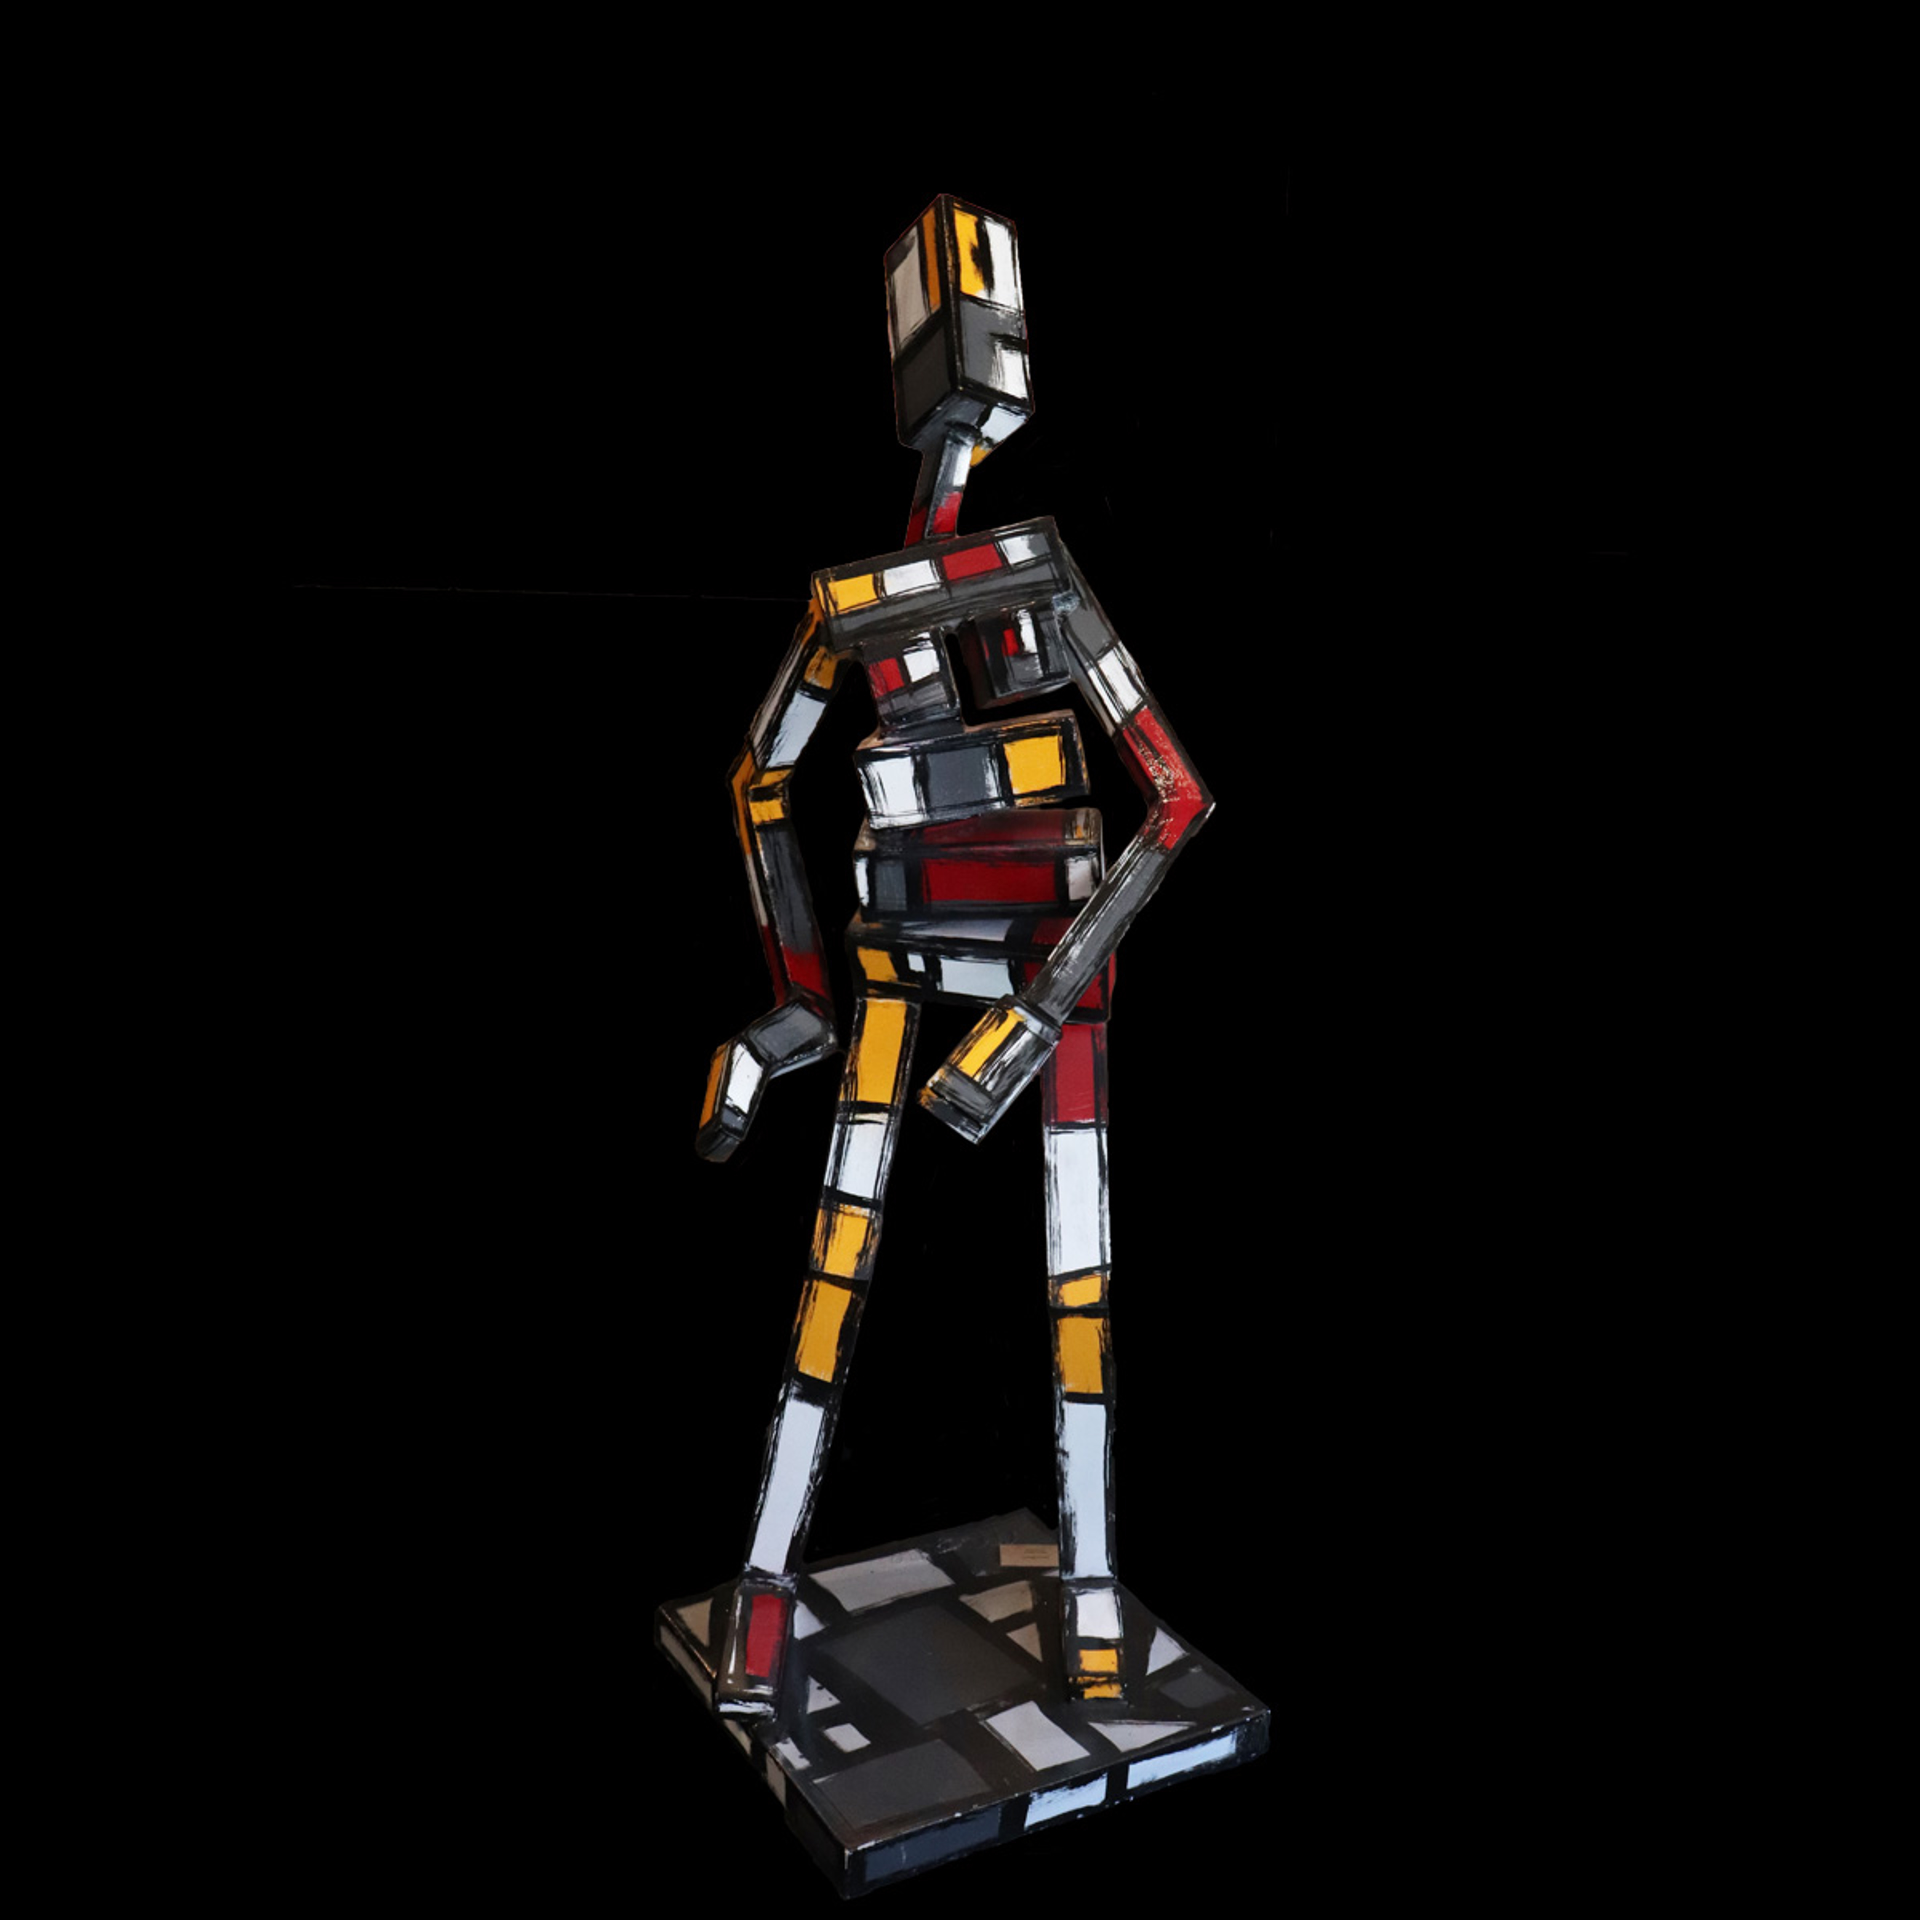 Dance Figure (Yellow, White, Red) by James Moore